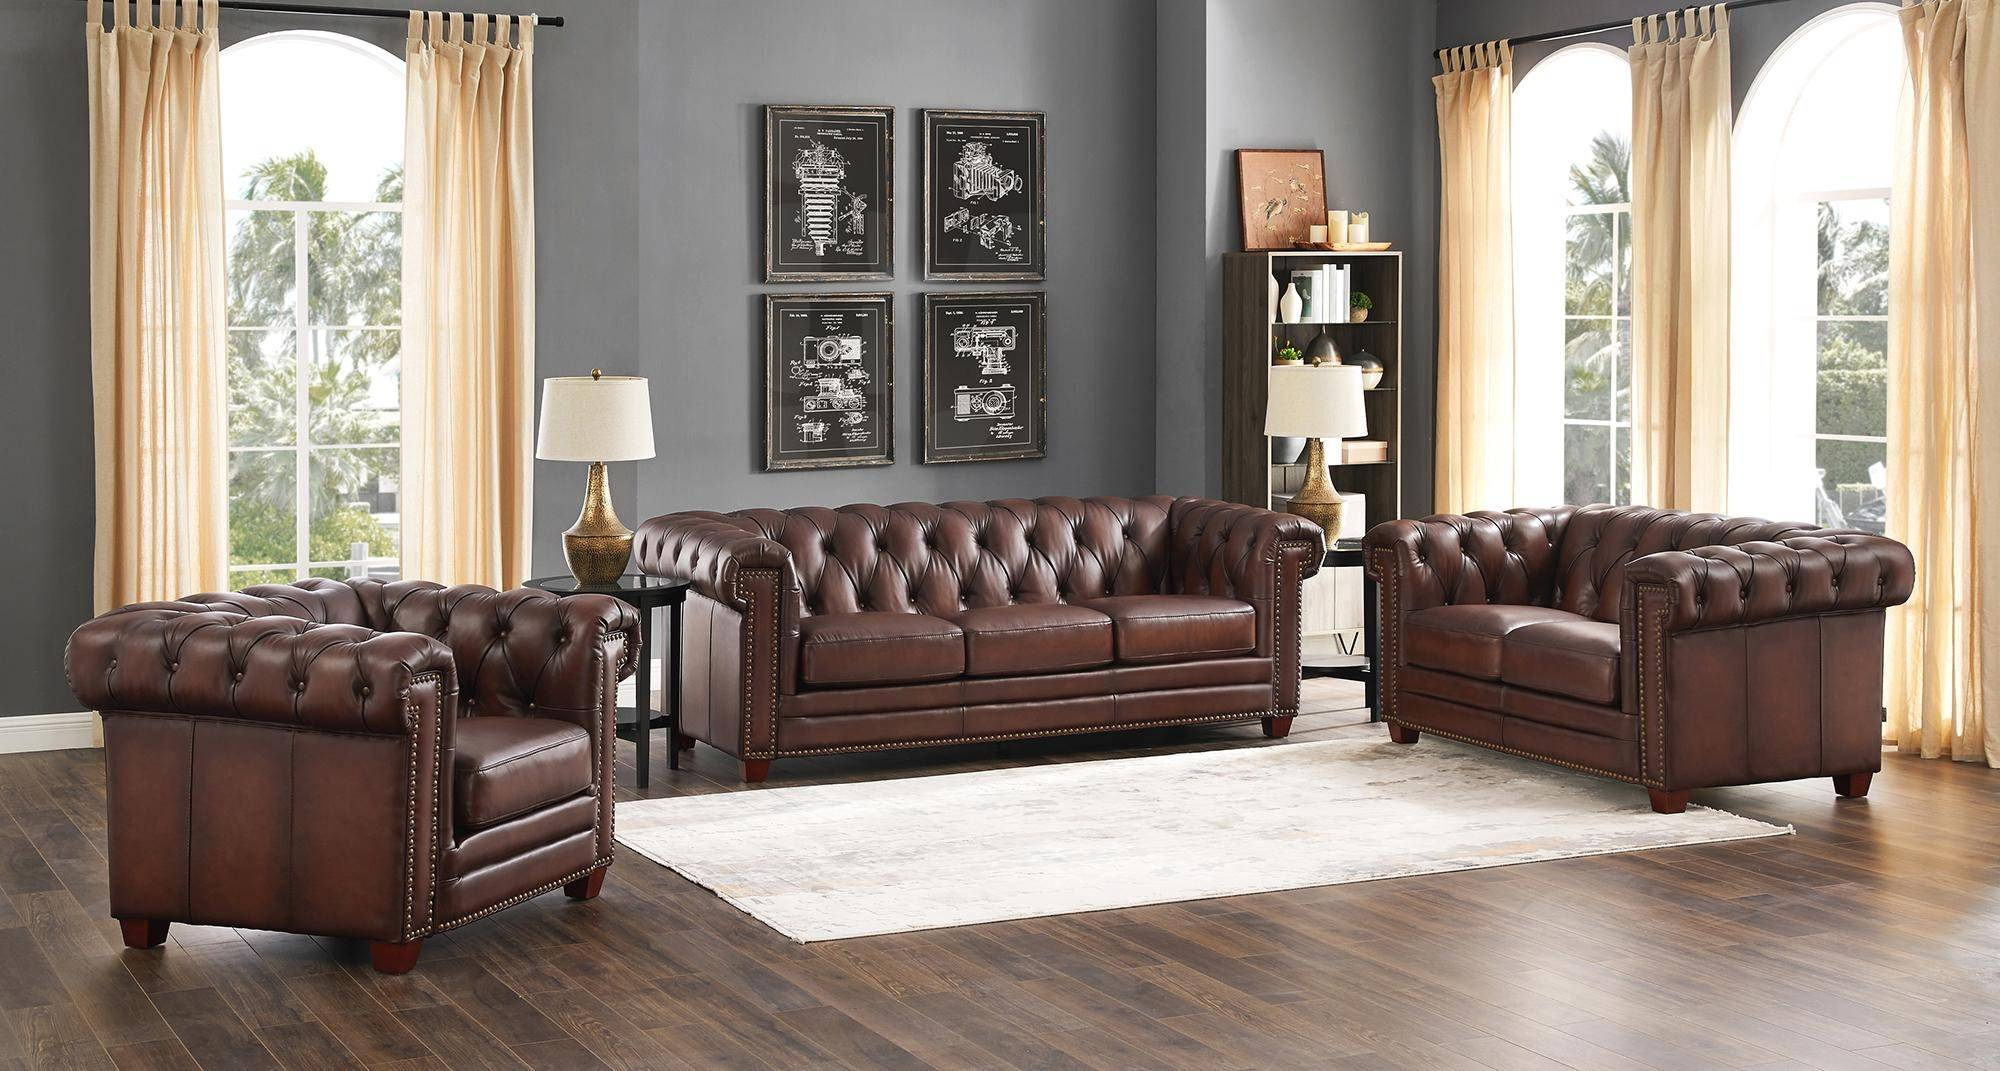 Magnificent Dark Brown Stanwood Genuine Leather Sofa Loveseat Set 2P Ibusinesslaw Wood Chair Design Ideas Ibusinesslaworg